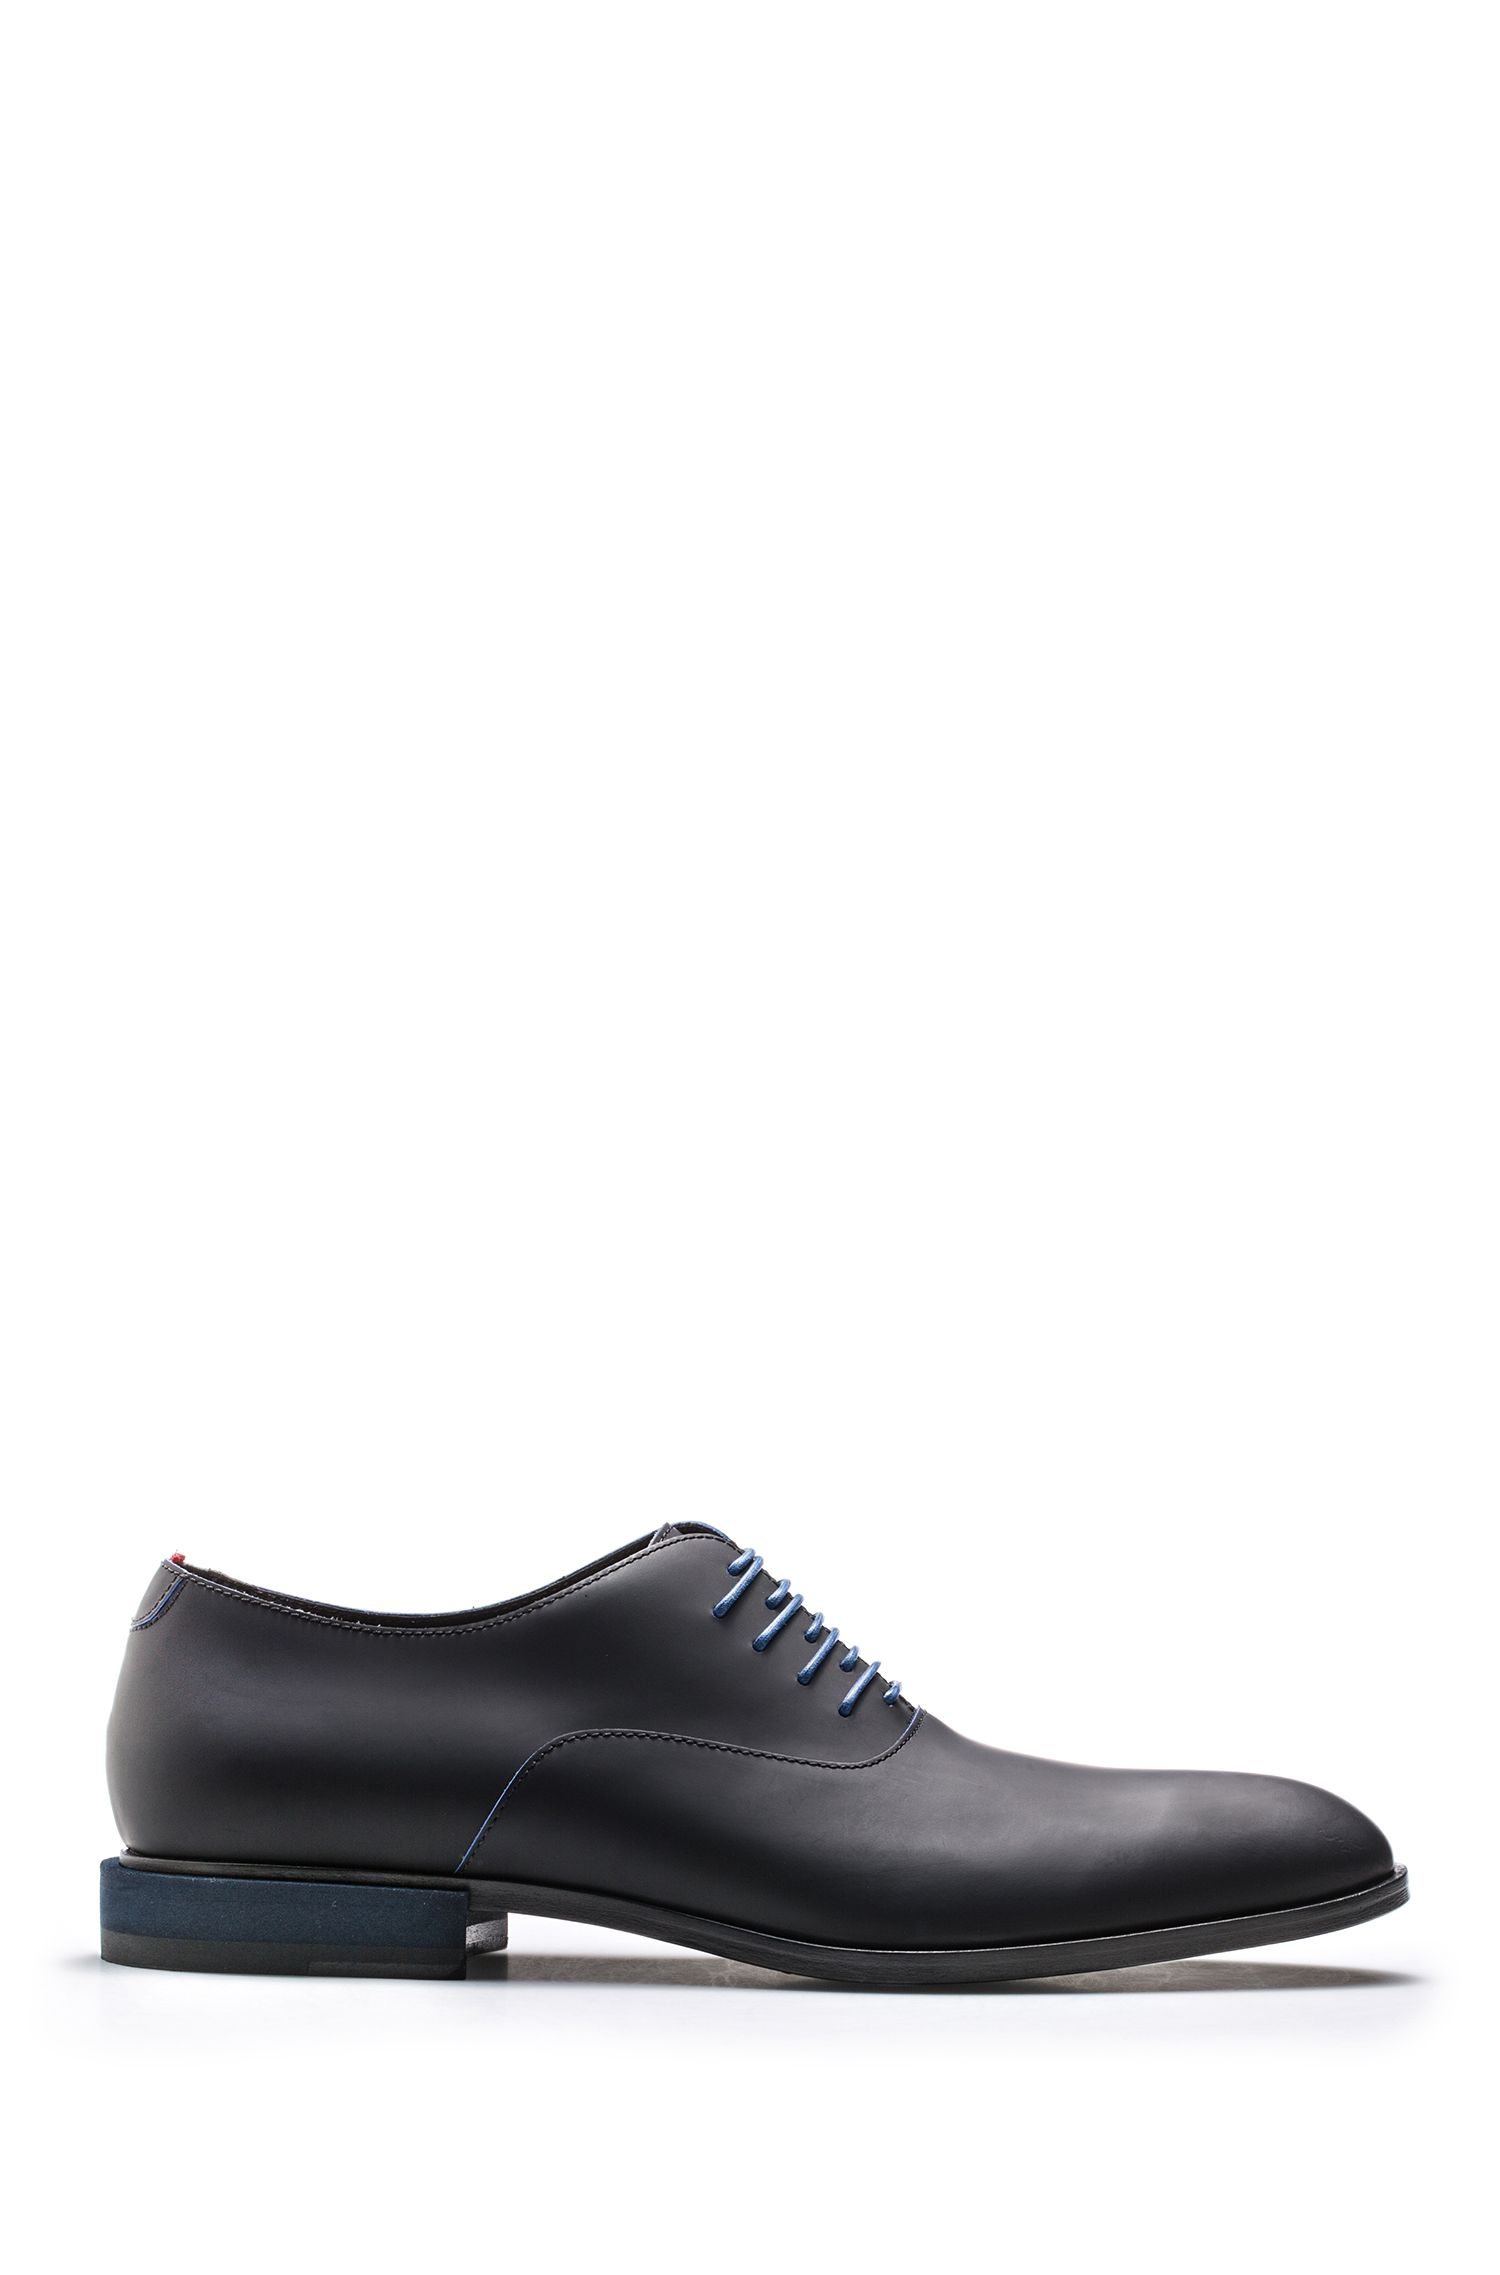 Italian-made rubberized calf leather Oxford shoes, Black